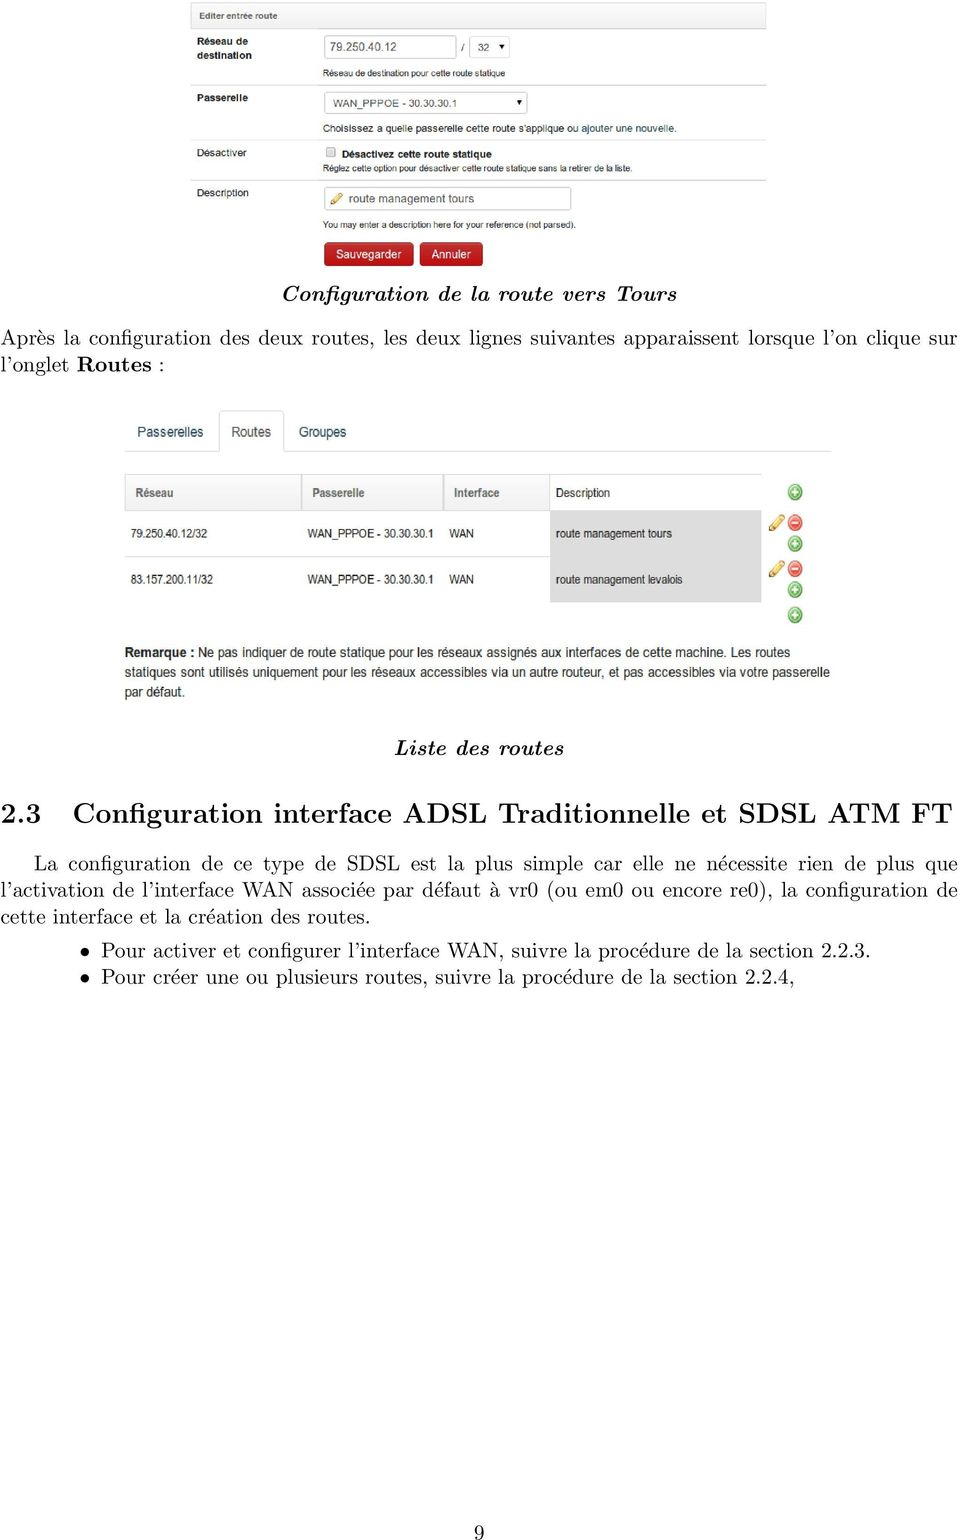 3 Configuration interface ADSL Traditionnelle et SDSL ATM FT La configuration de ce type de SDSL est la plus simple car elle ne nécessite rien de plus que l